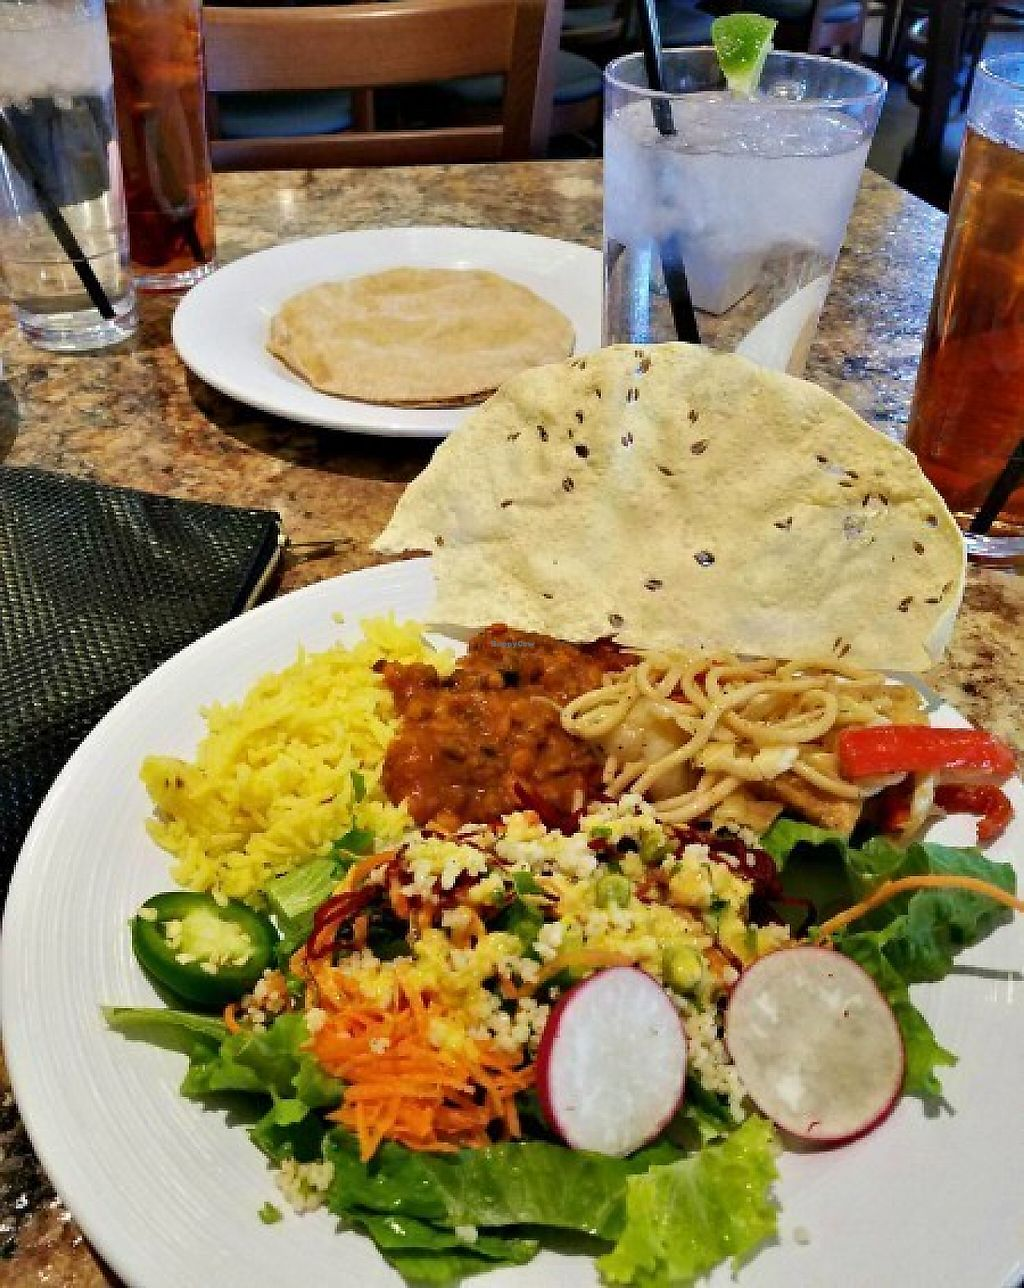 """Photo of Govinda's  by <a href=""""/members/profile/carnivoresandvegans"""">carnivoresandvegans</a> <br/>A BUFFET PLATE OF GOODNESS <br/> May 14, 2017  - <a href='/contact/abuse/image/78041/258718'>Report</a>"""